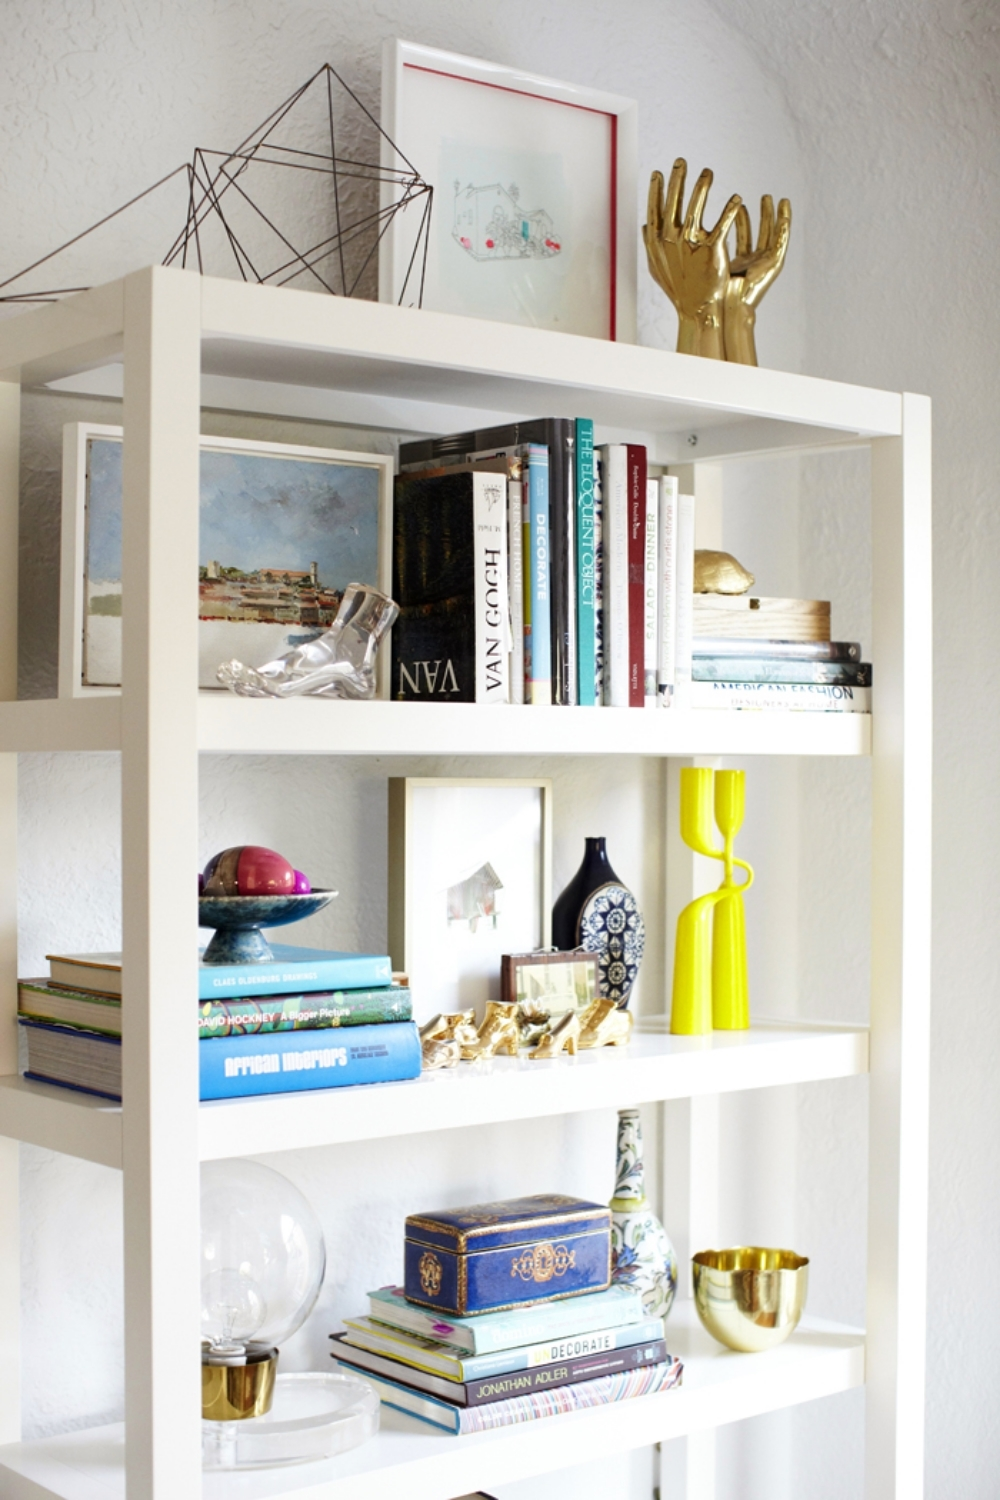 Shelfie by Emily Henderson (see golden hands top right).